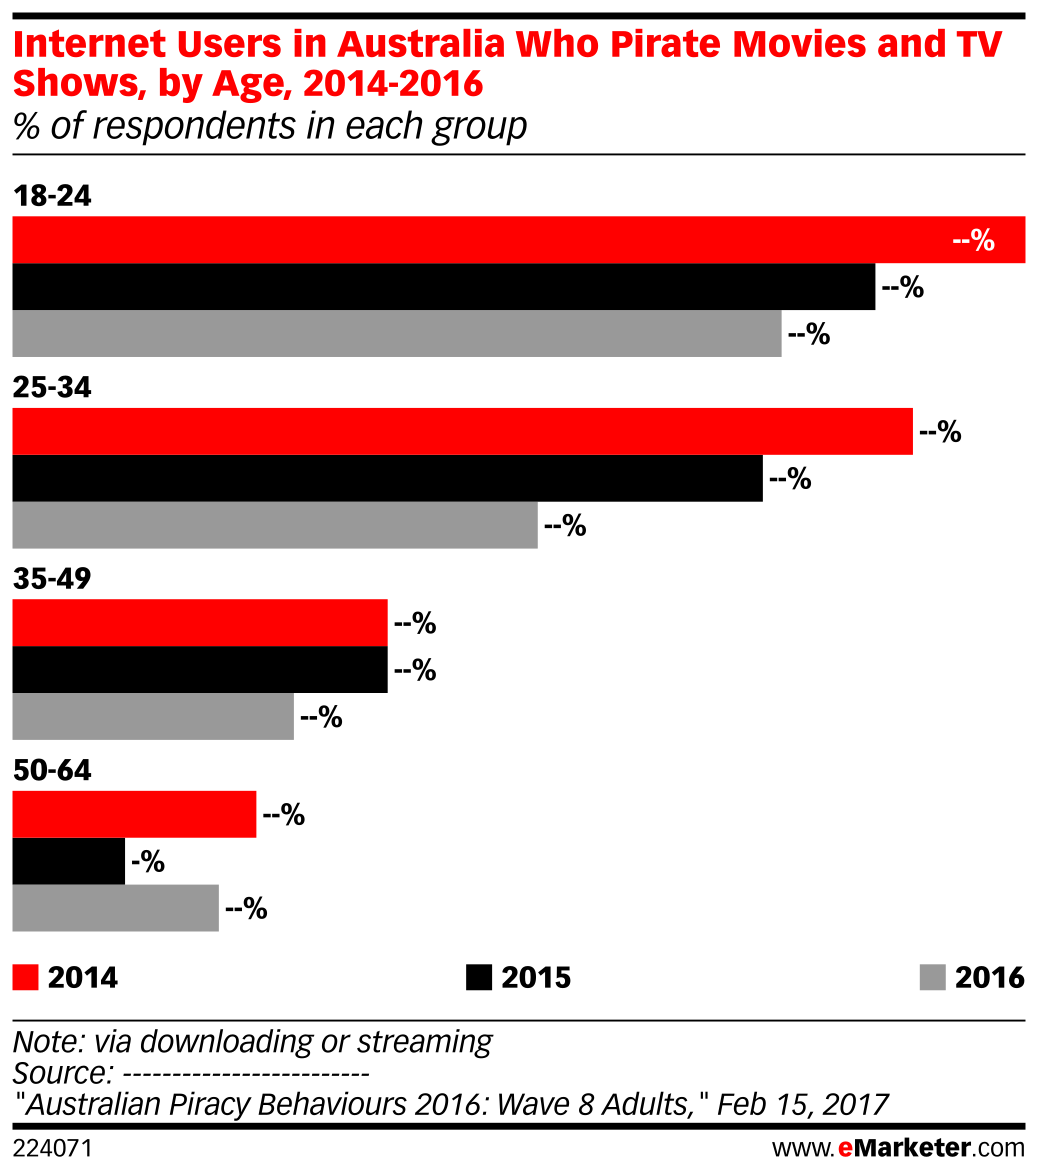 Internet Users in Australia Who Pirate Movies and TV Shows